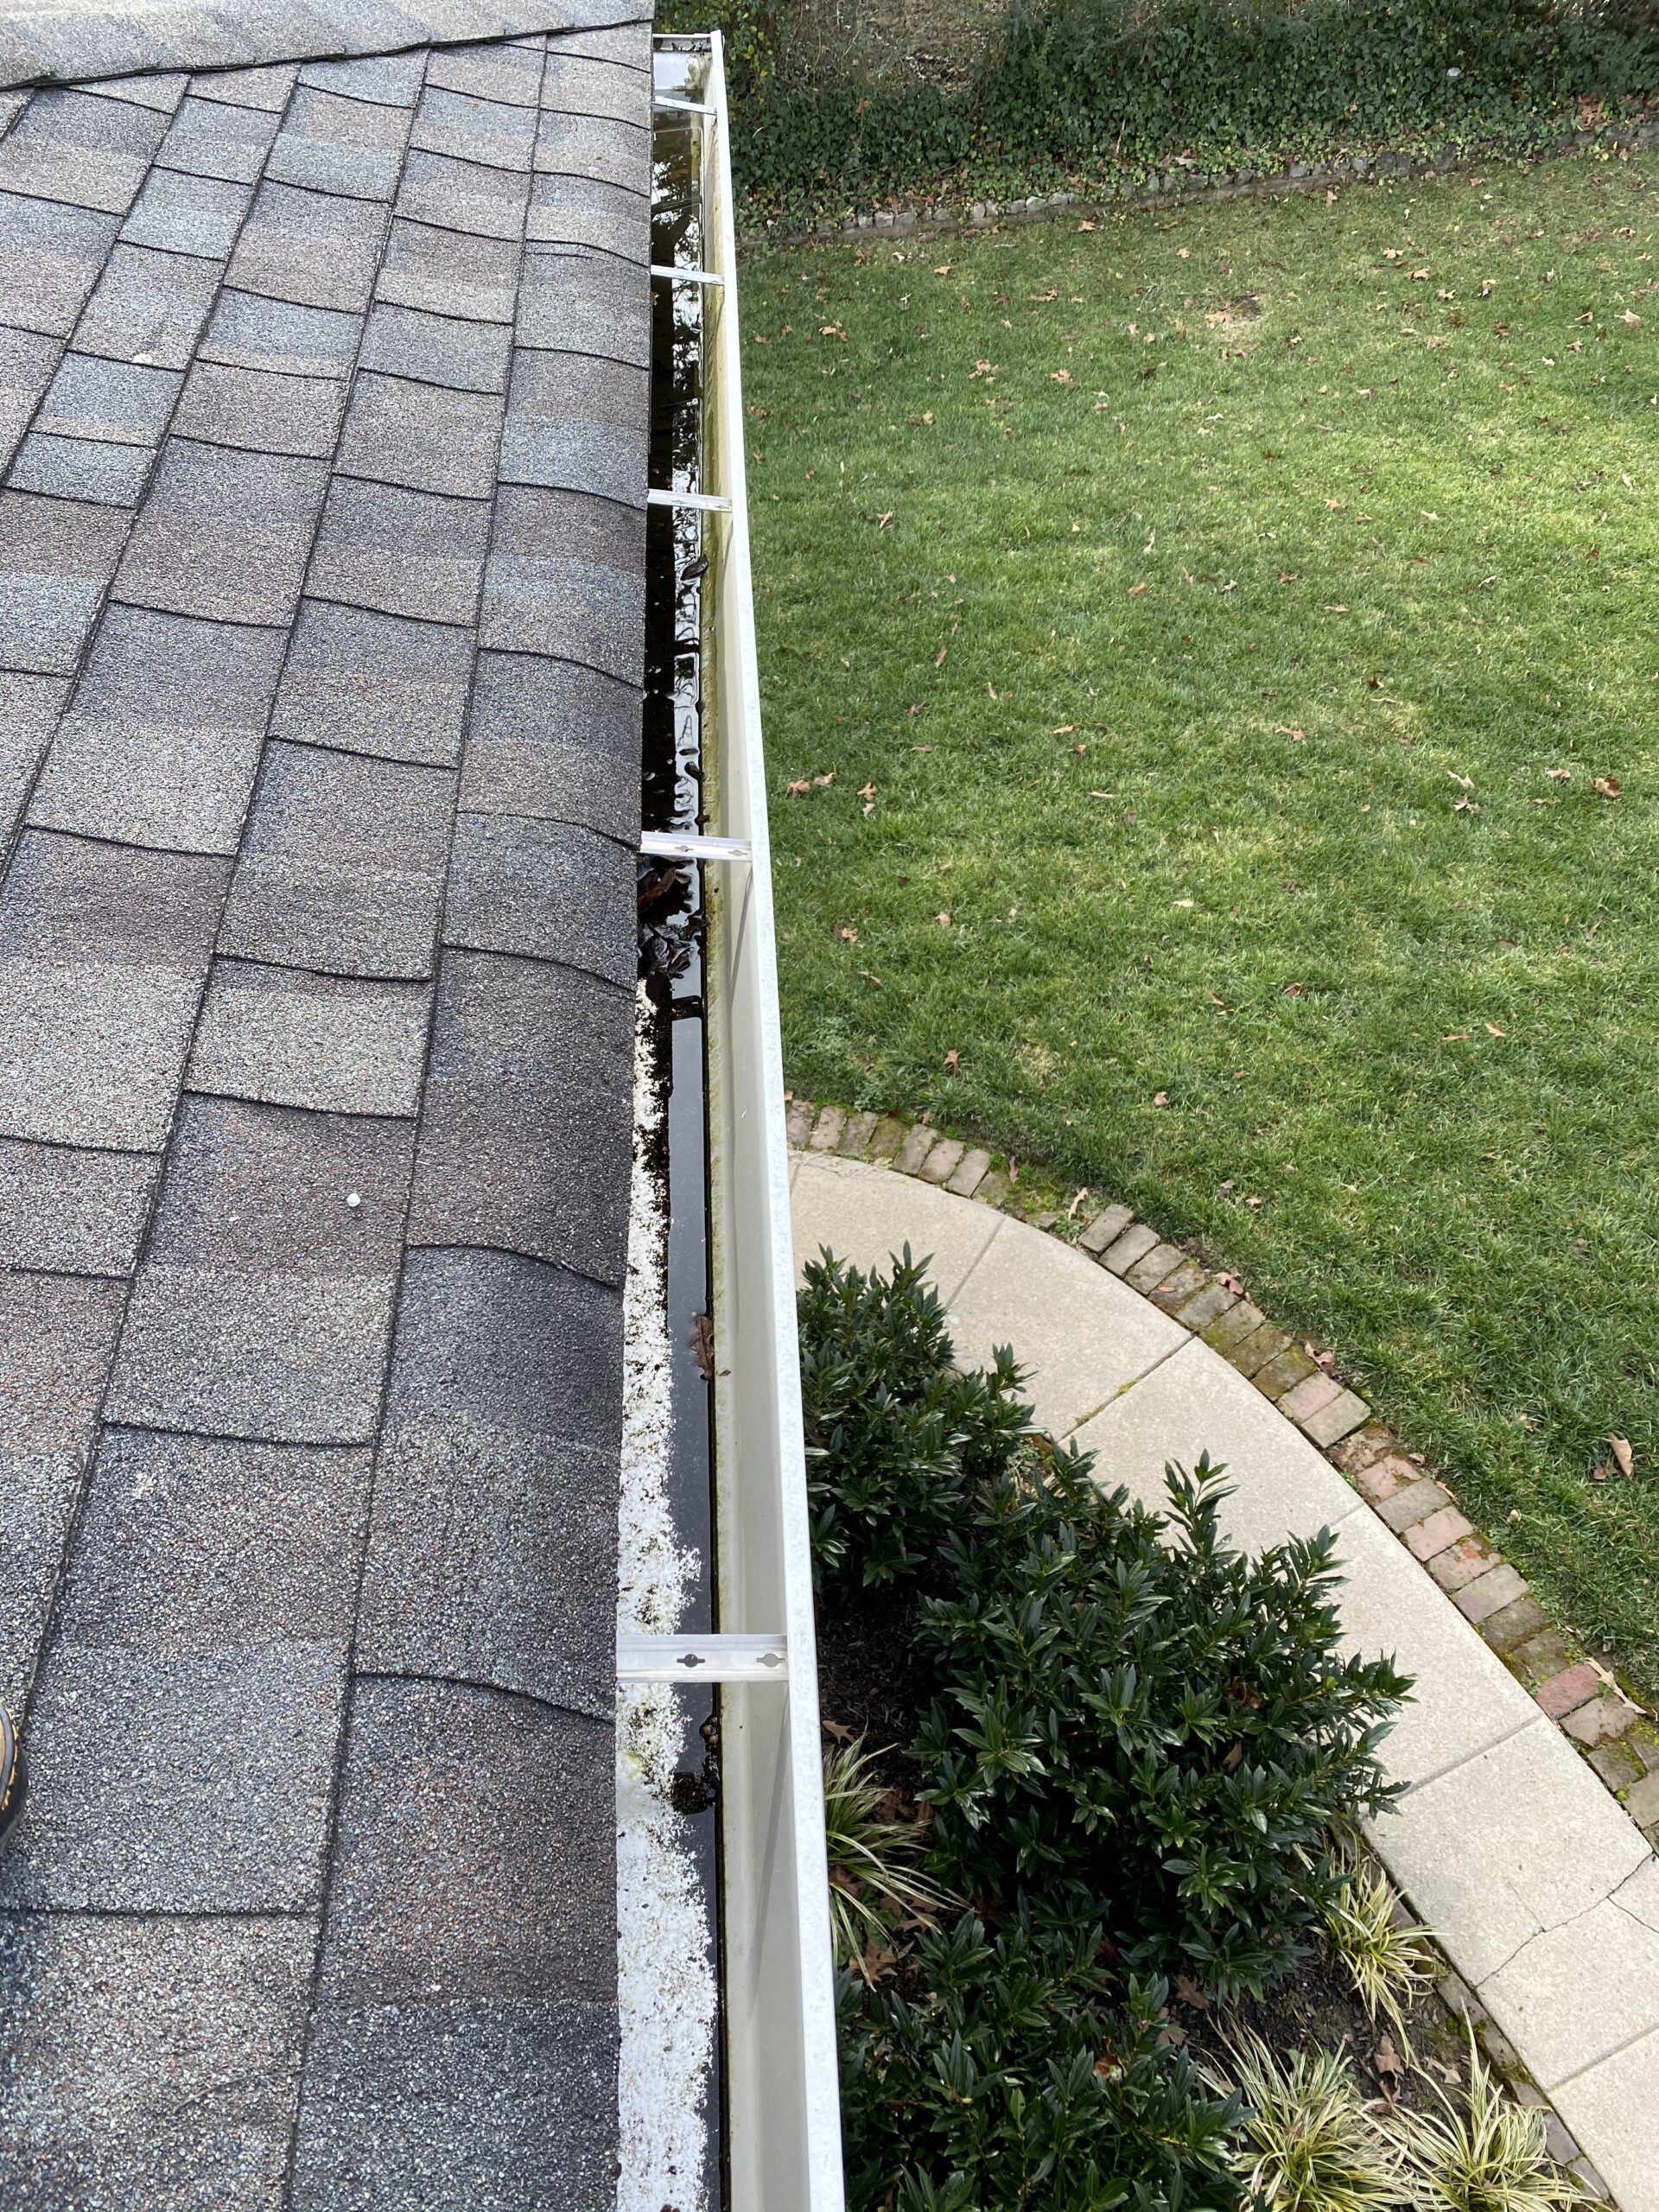 This is a picture of a white gutter that is holding water